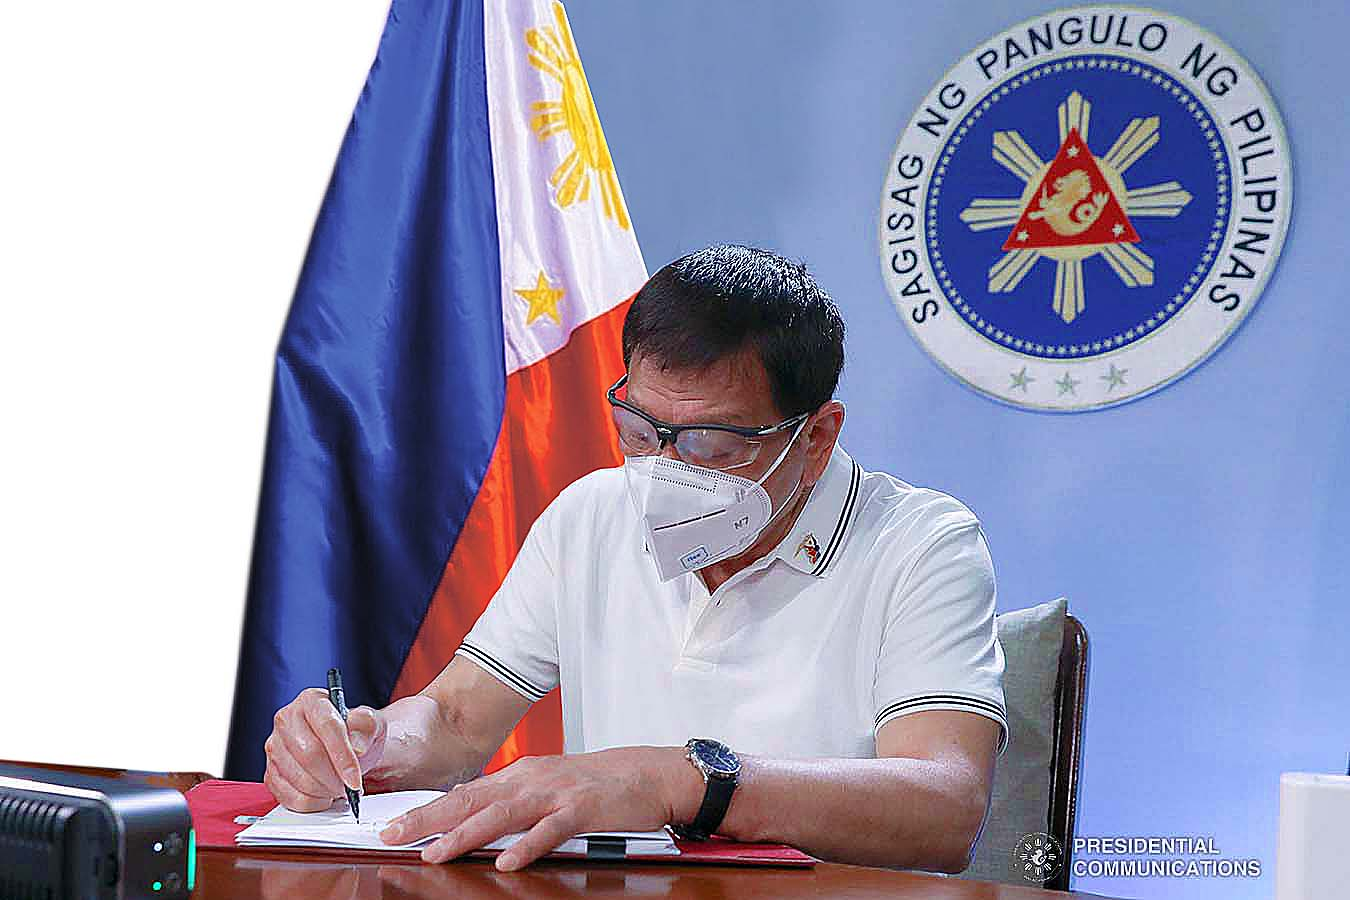 President Rodrigo Roa Duterte signed into law Friday (Feb. 26, 2021) a legislation creating a trust fund for the country's coconut industry and its workers. PCOO.GOV.PH